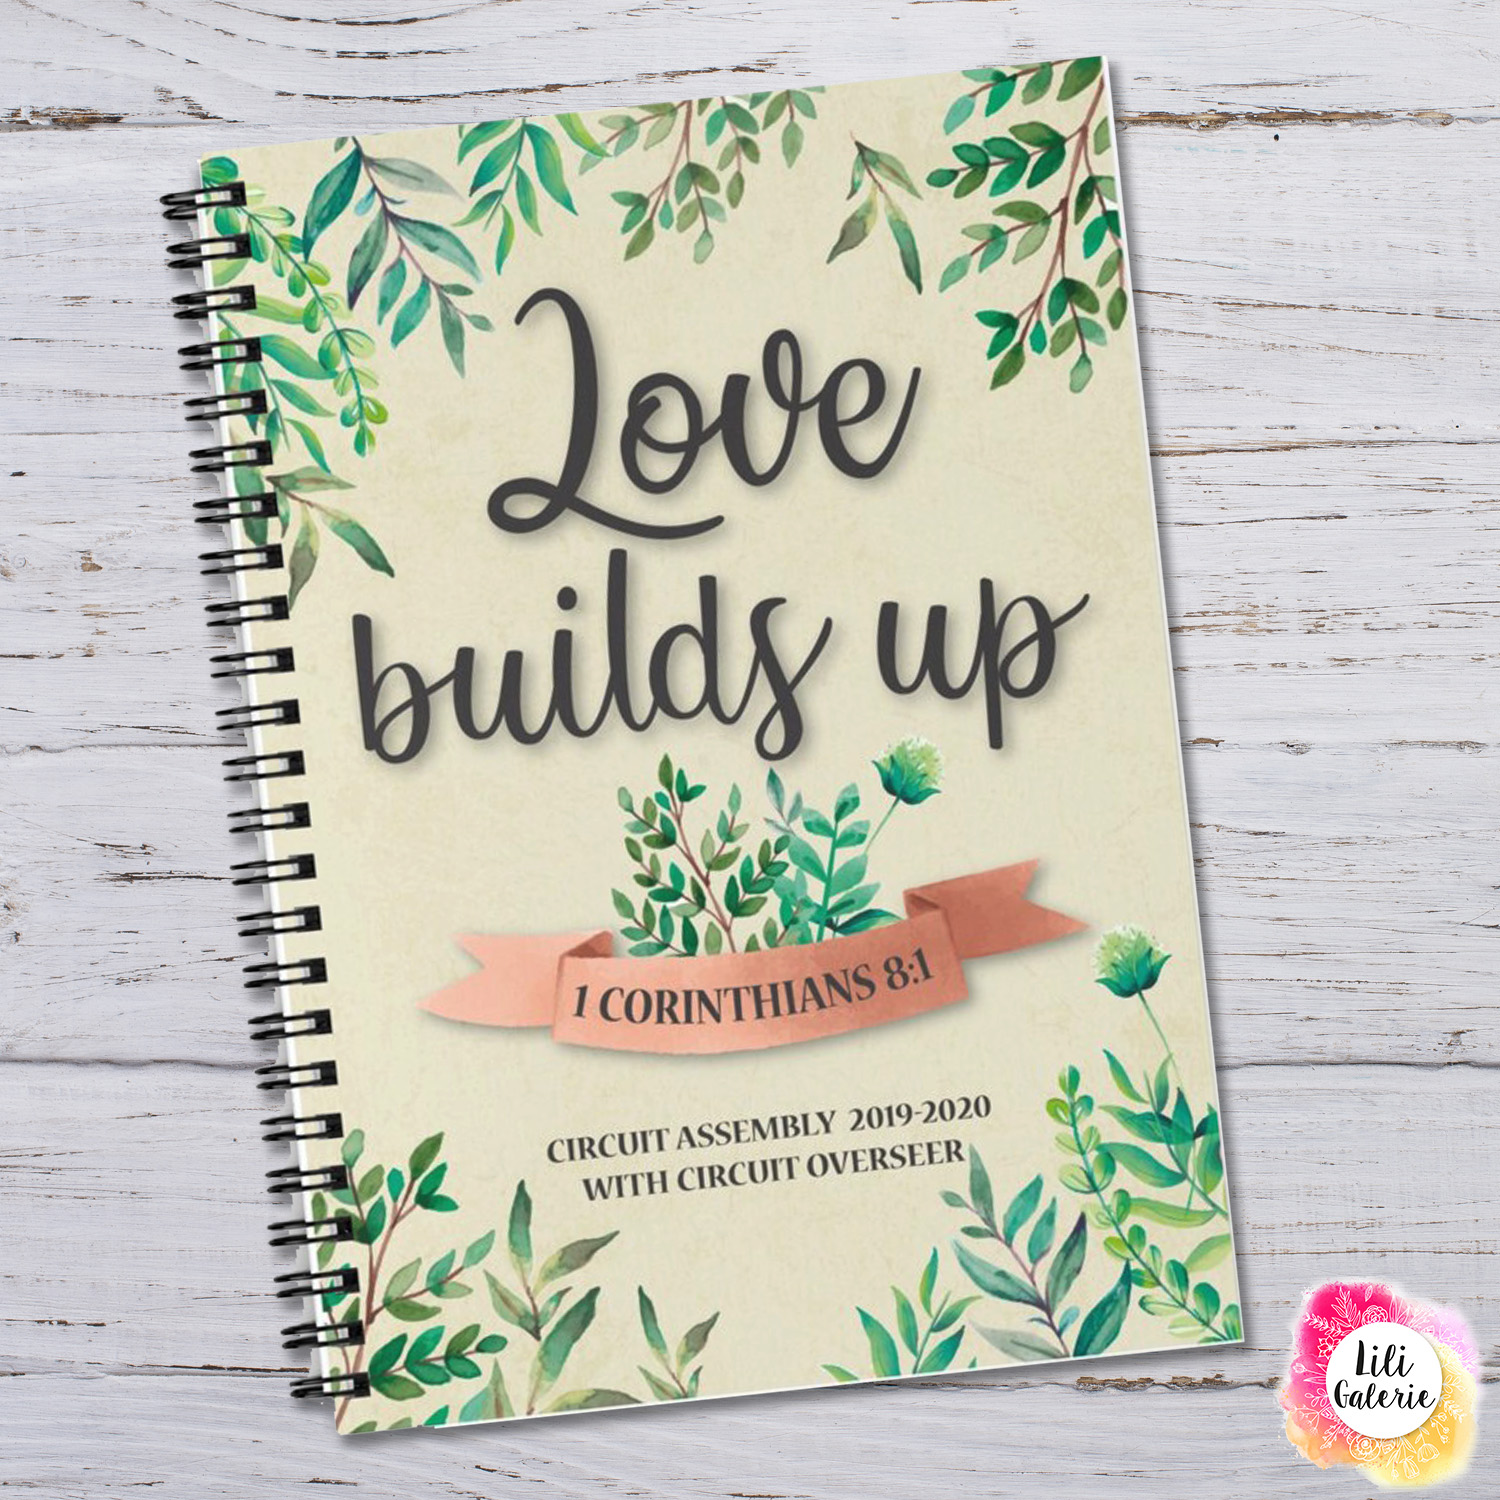 LiliGalerie-CircuitAssembly2019-2020-LOVE BUILDS UP